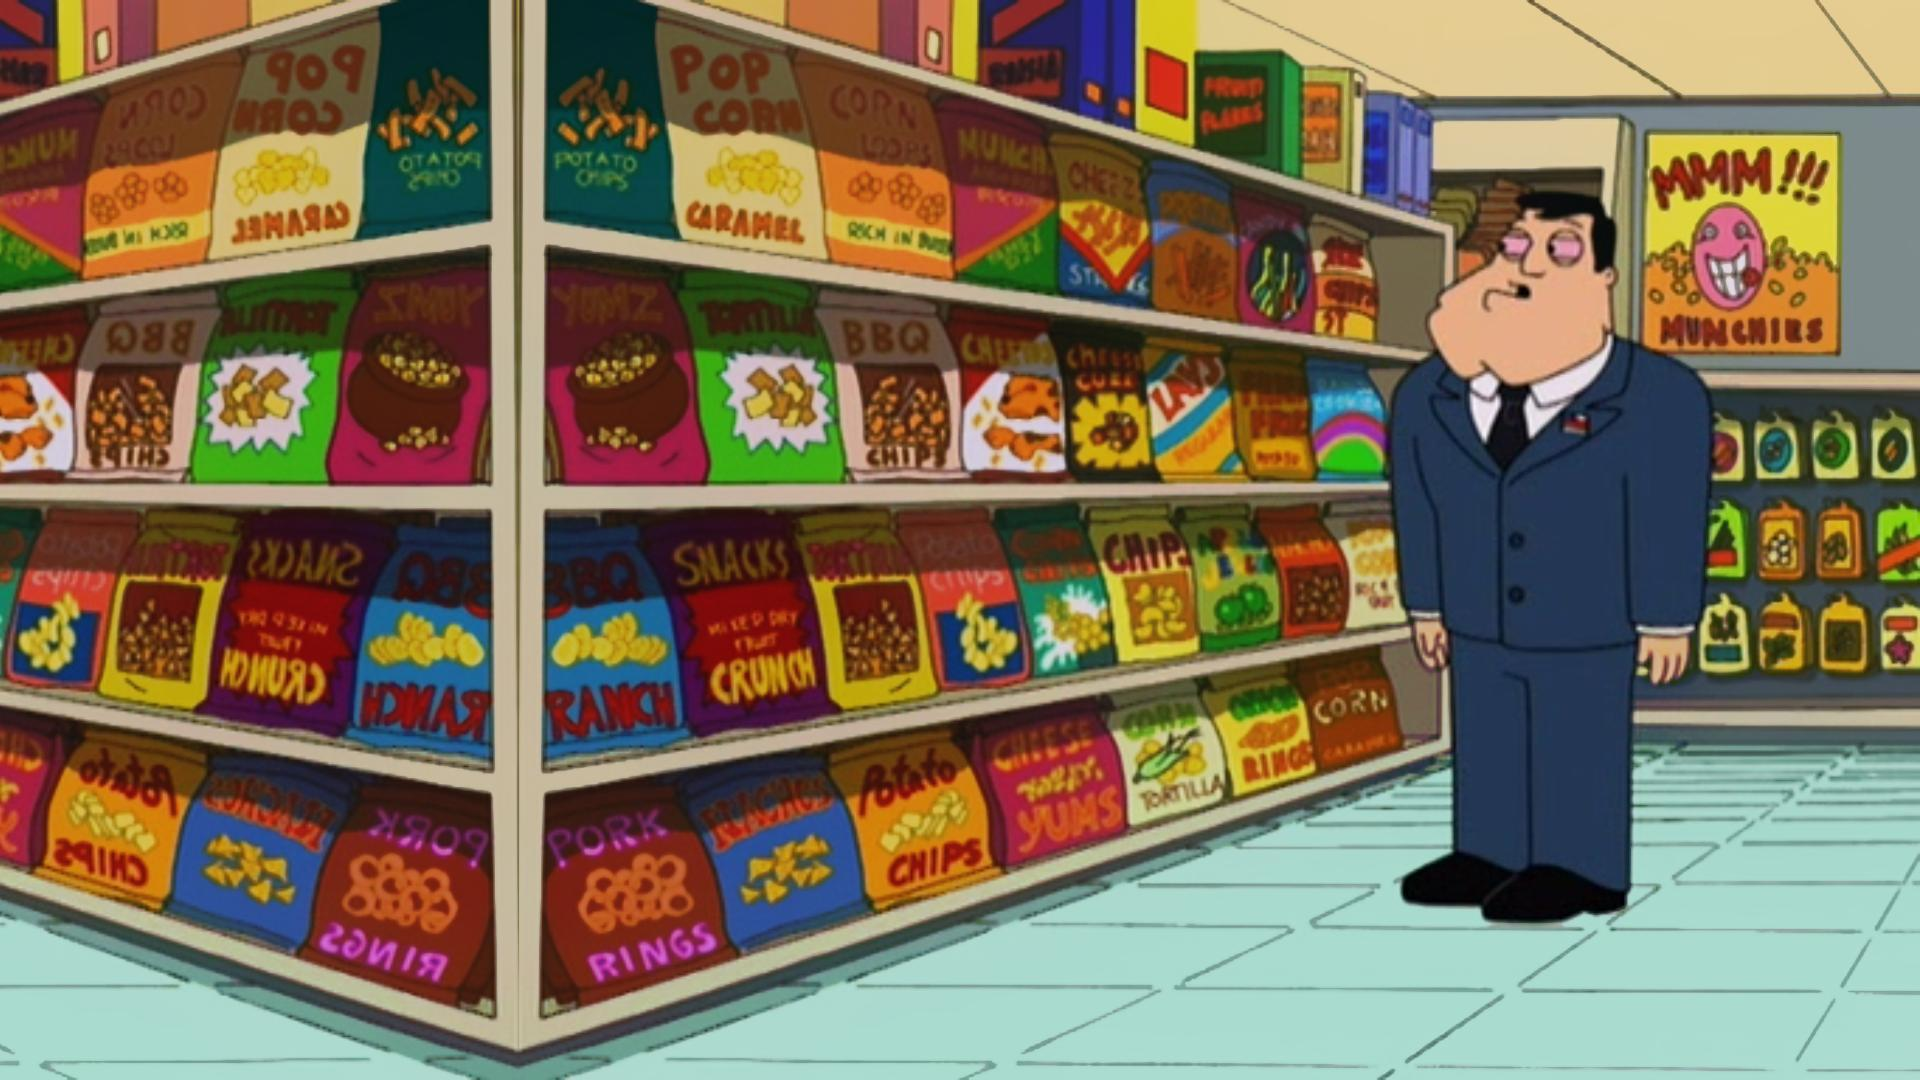 American Dad! Computer Wallpapers, Desktop Backgrounds 1280x800 Id